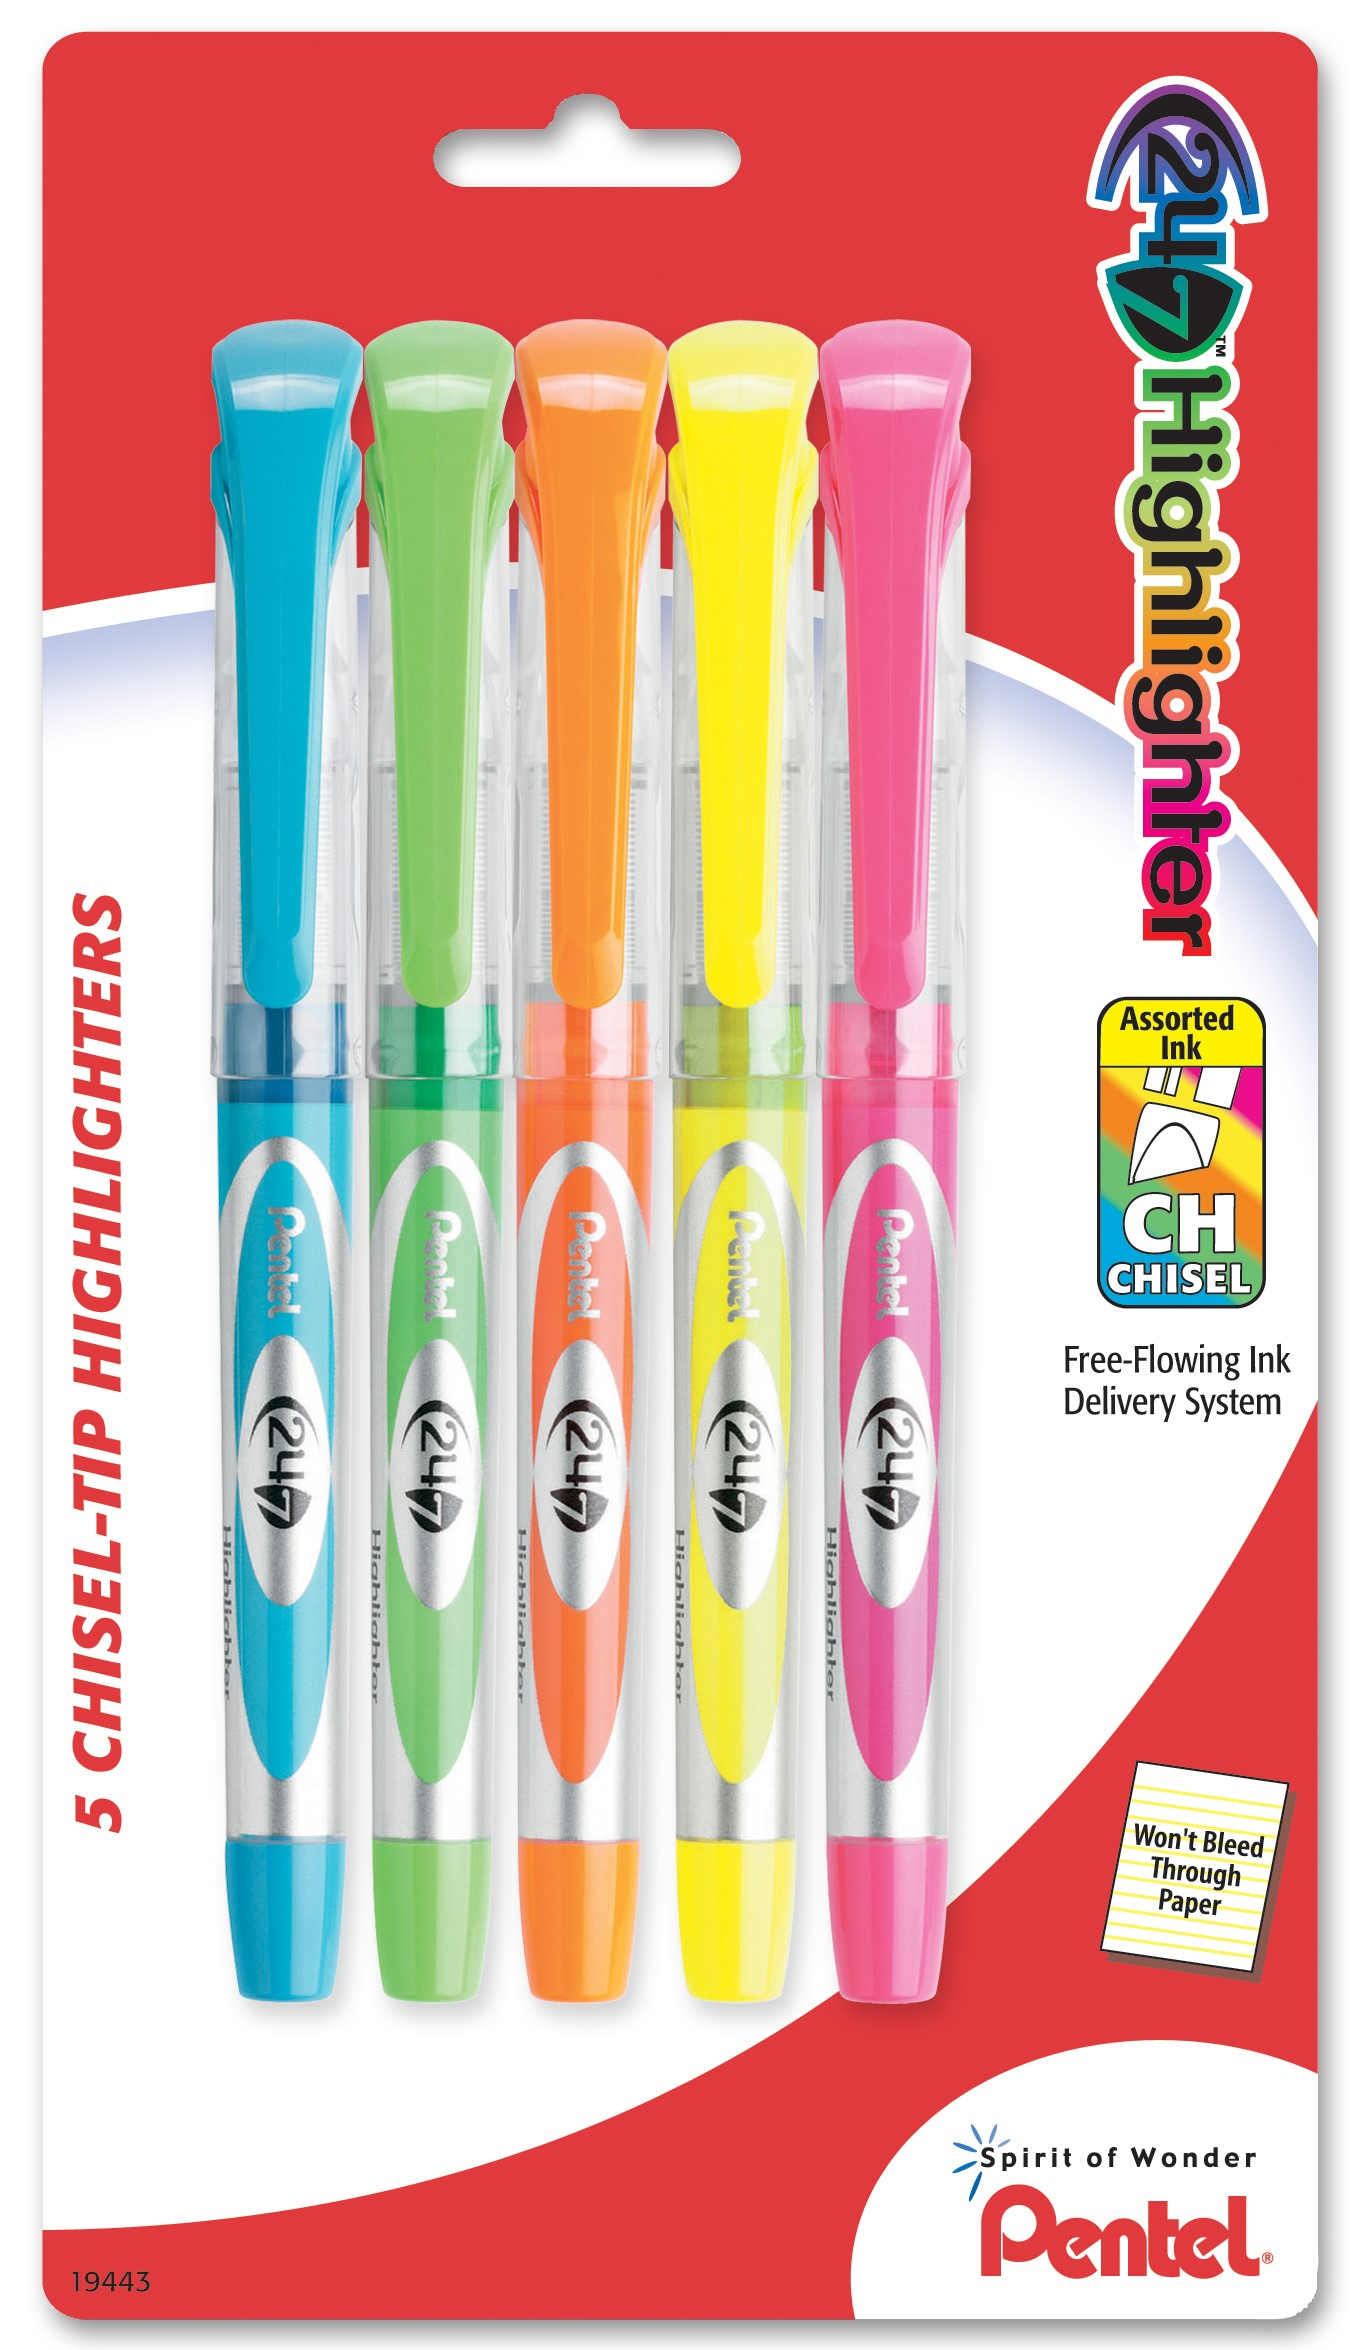 24 7 Liquid Highlighter, Chisel Tip, Assorted Ink (F G P K S), 5-Pk by Pentel